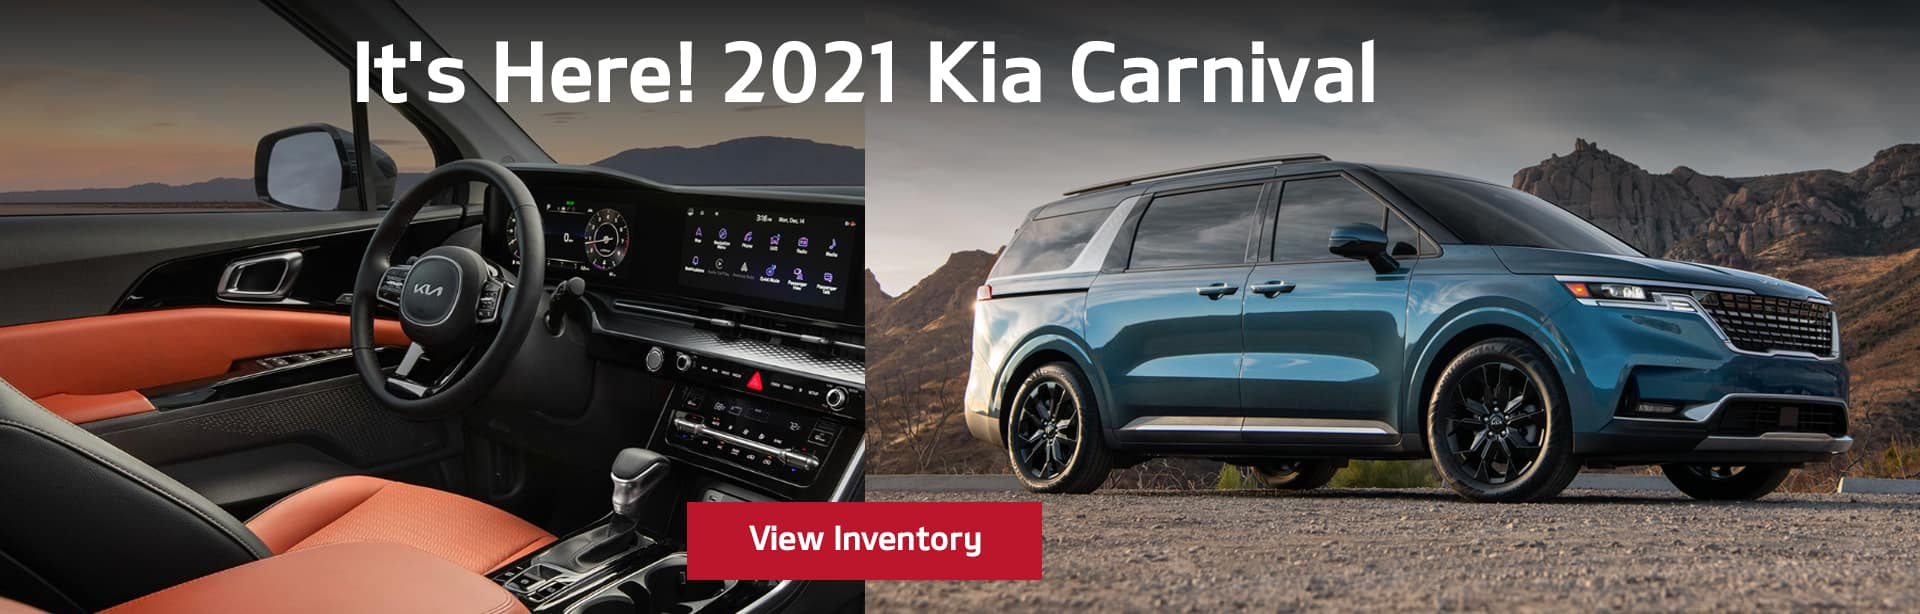 It's Here! 2021 Kia Carnival